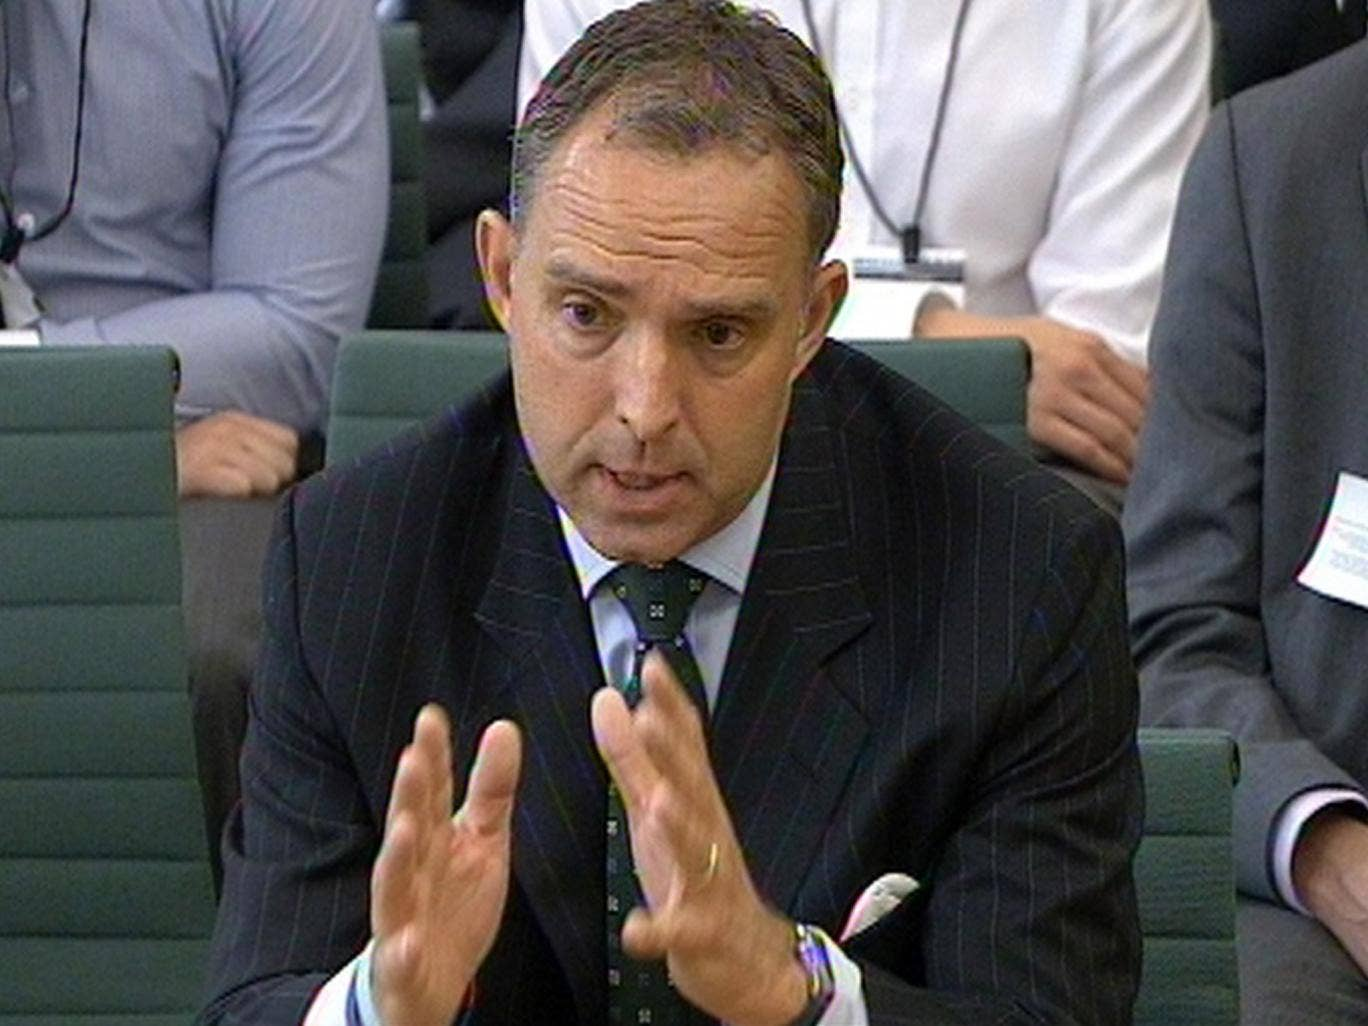 Home Office Permanent secretary Mark Sedwill appears in front of the Home Affairs Select Committee at the House of Commons